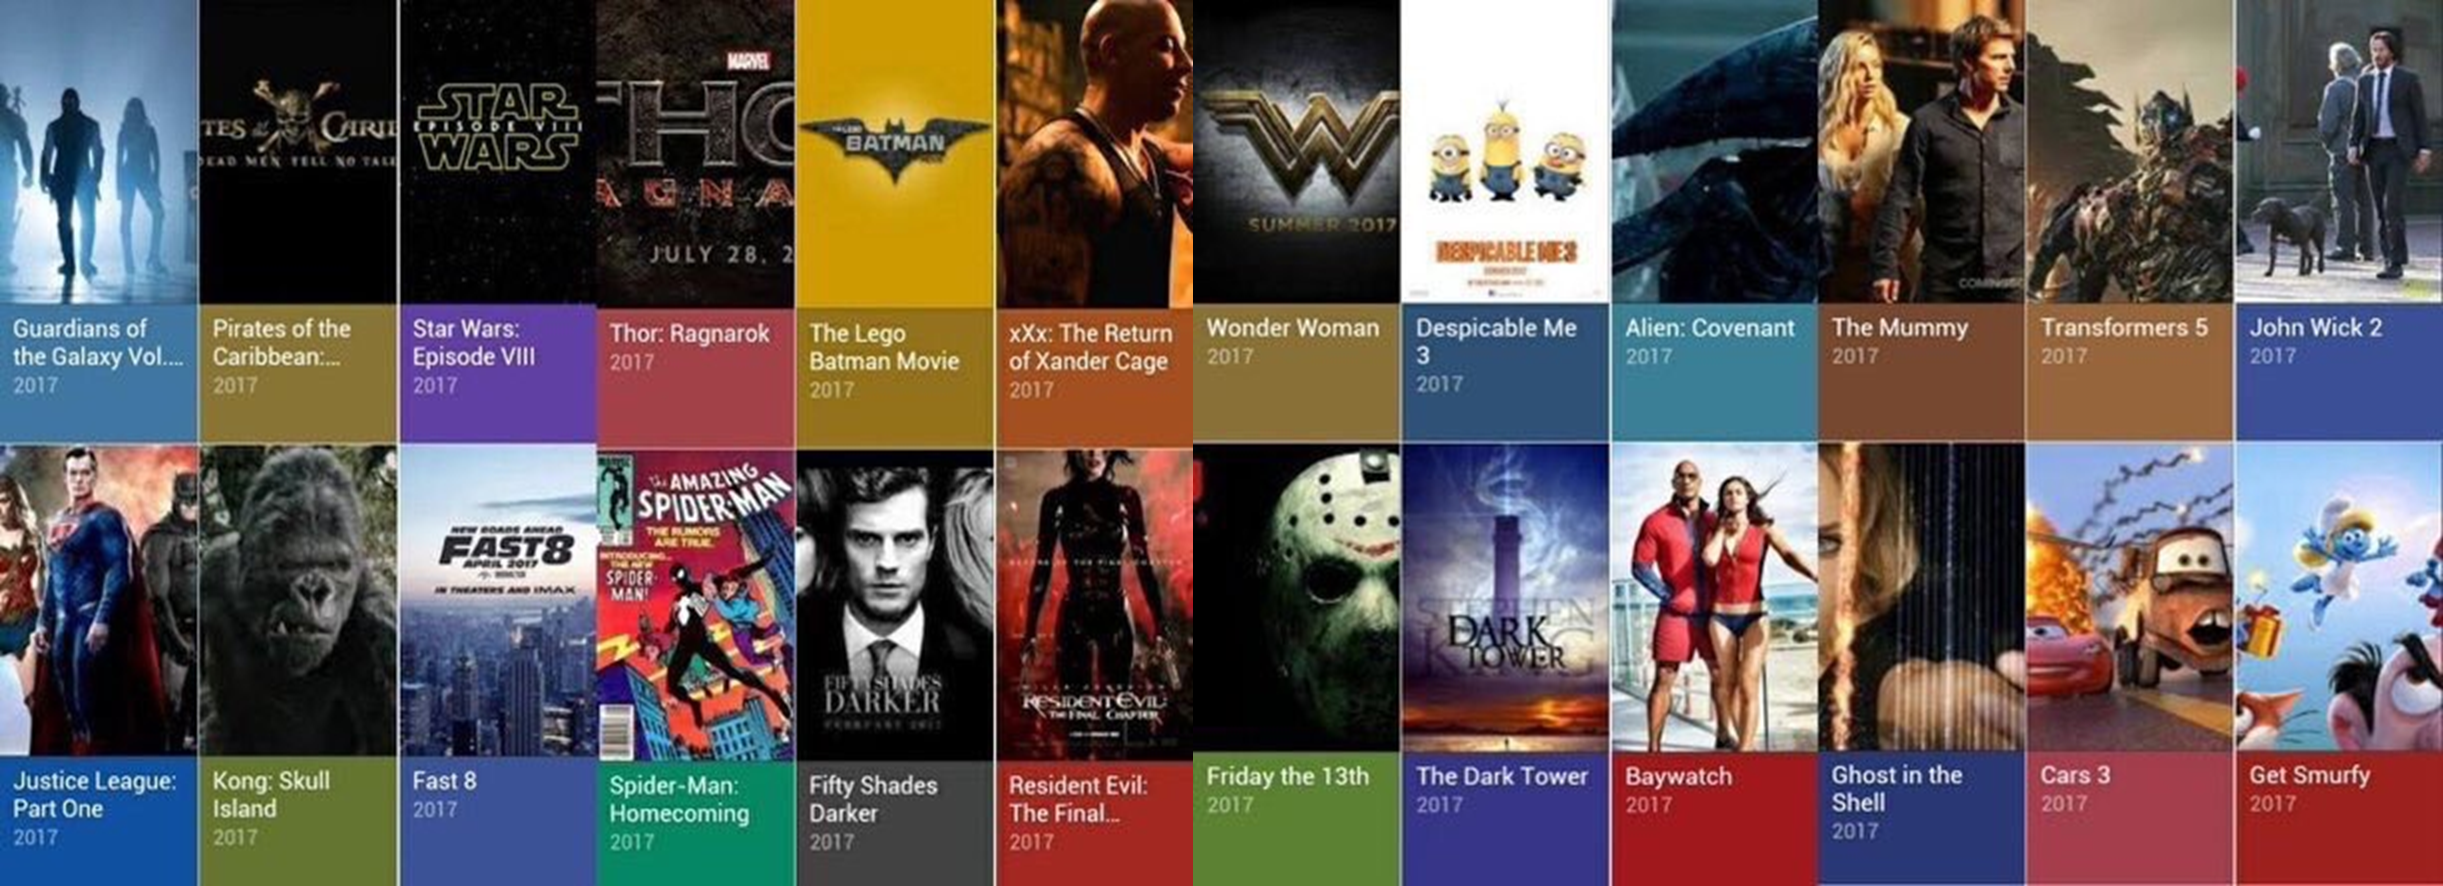 Upcoming Sequels Reboots In 2017